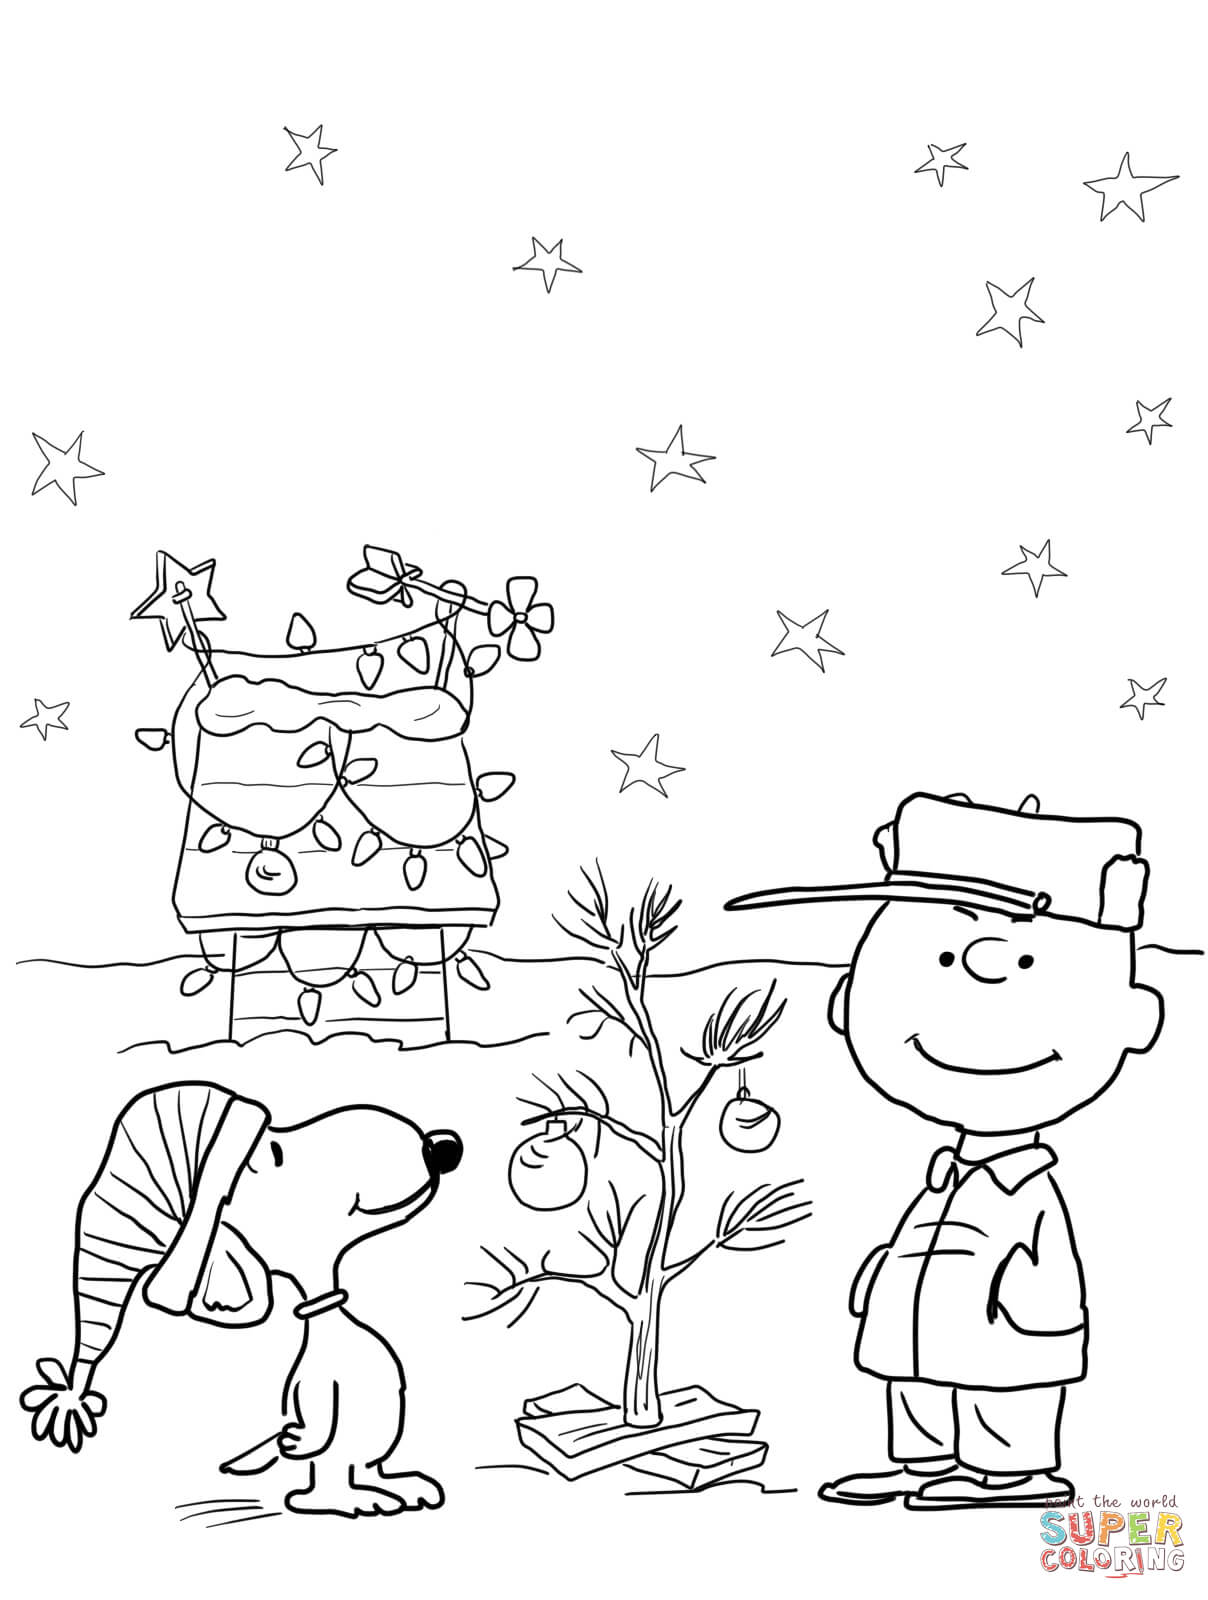 Christmas Coloring In Printables With Charlie Brown Page Free Printable Pages